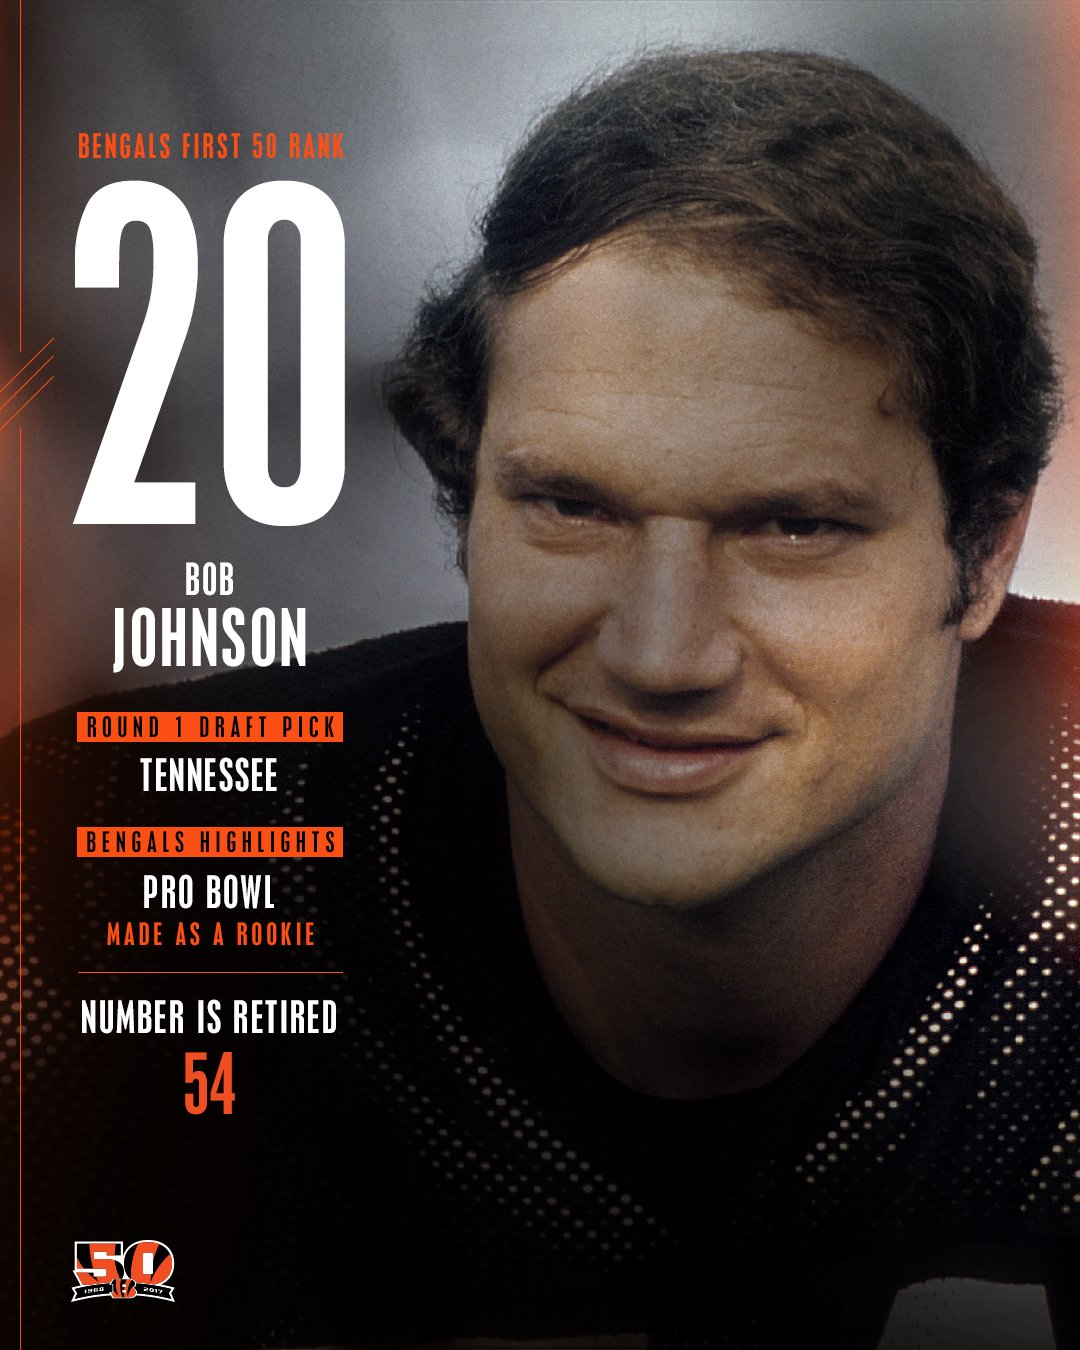 20 days until we host our first home opener since 2009!  Number 20 on the #Bengals First 50: Bob Johnson  #Bengals50 https://t.co/4iGGA4CDqN